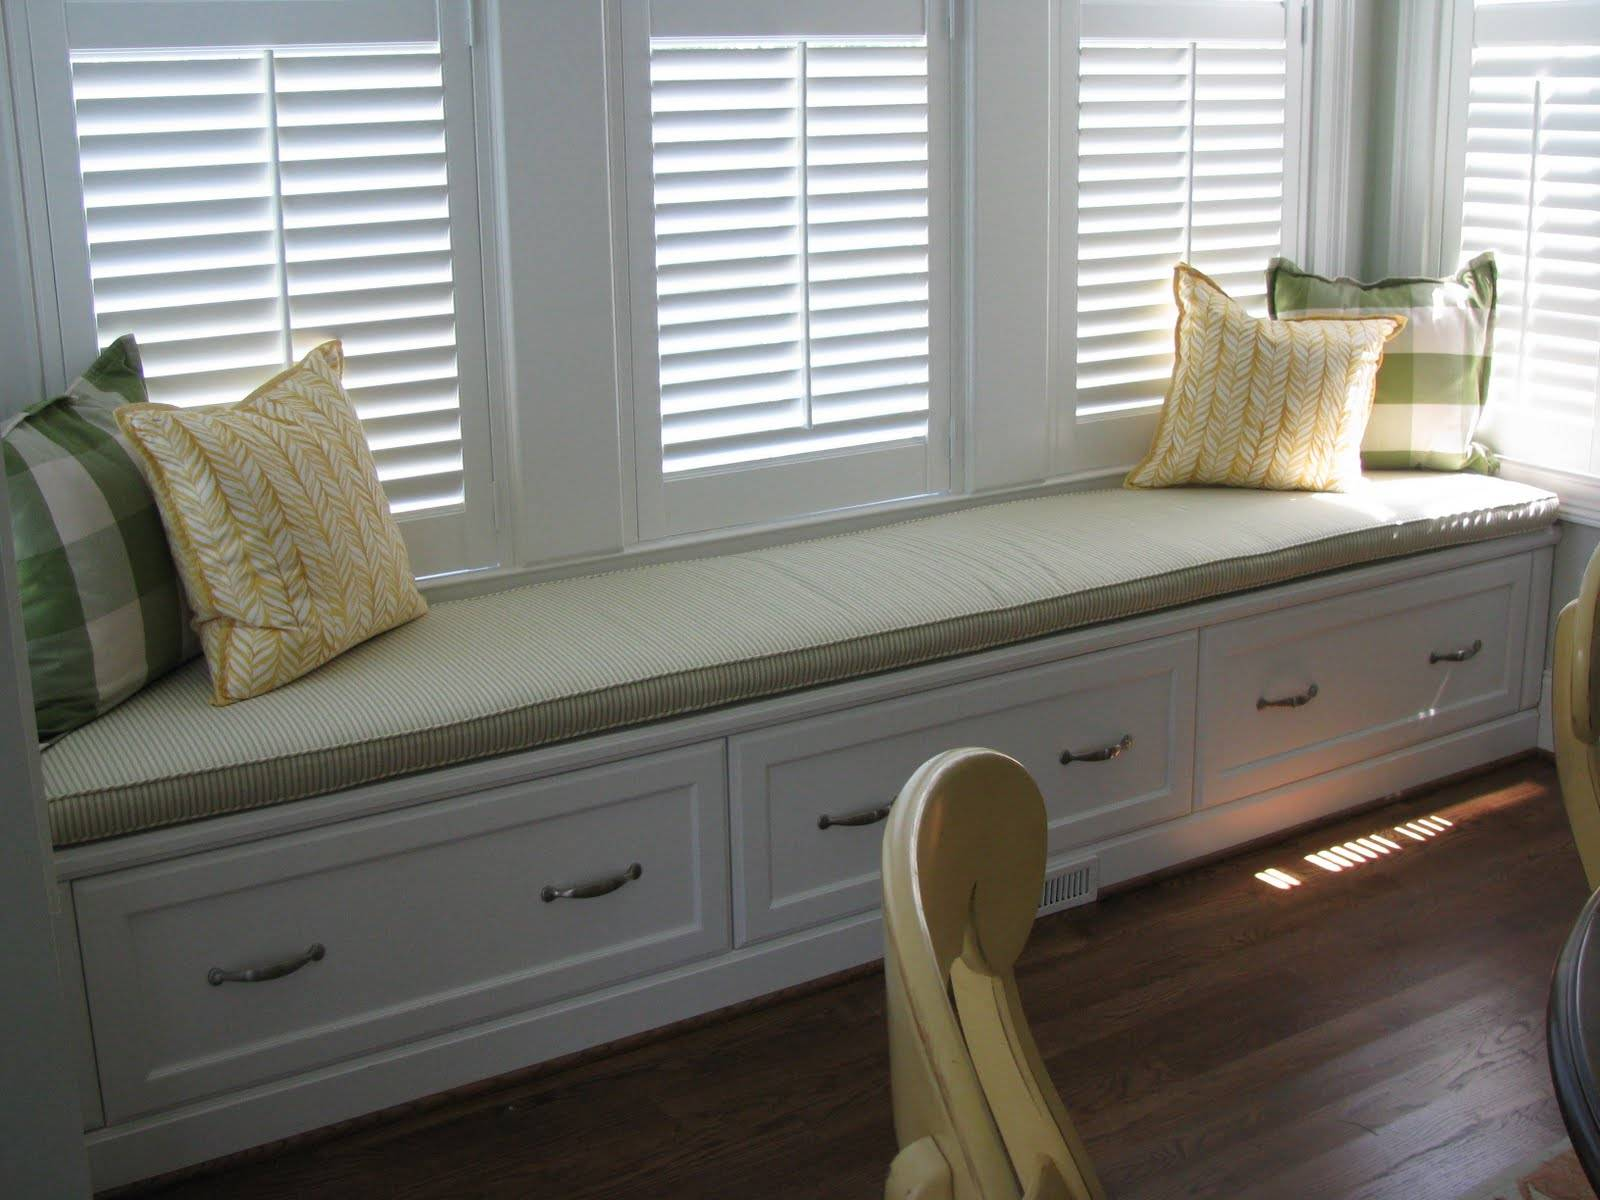 Window Seat Cushions Made Cushion